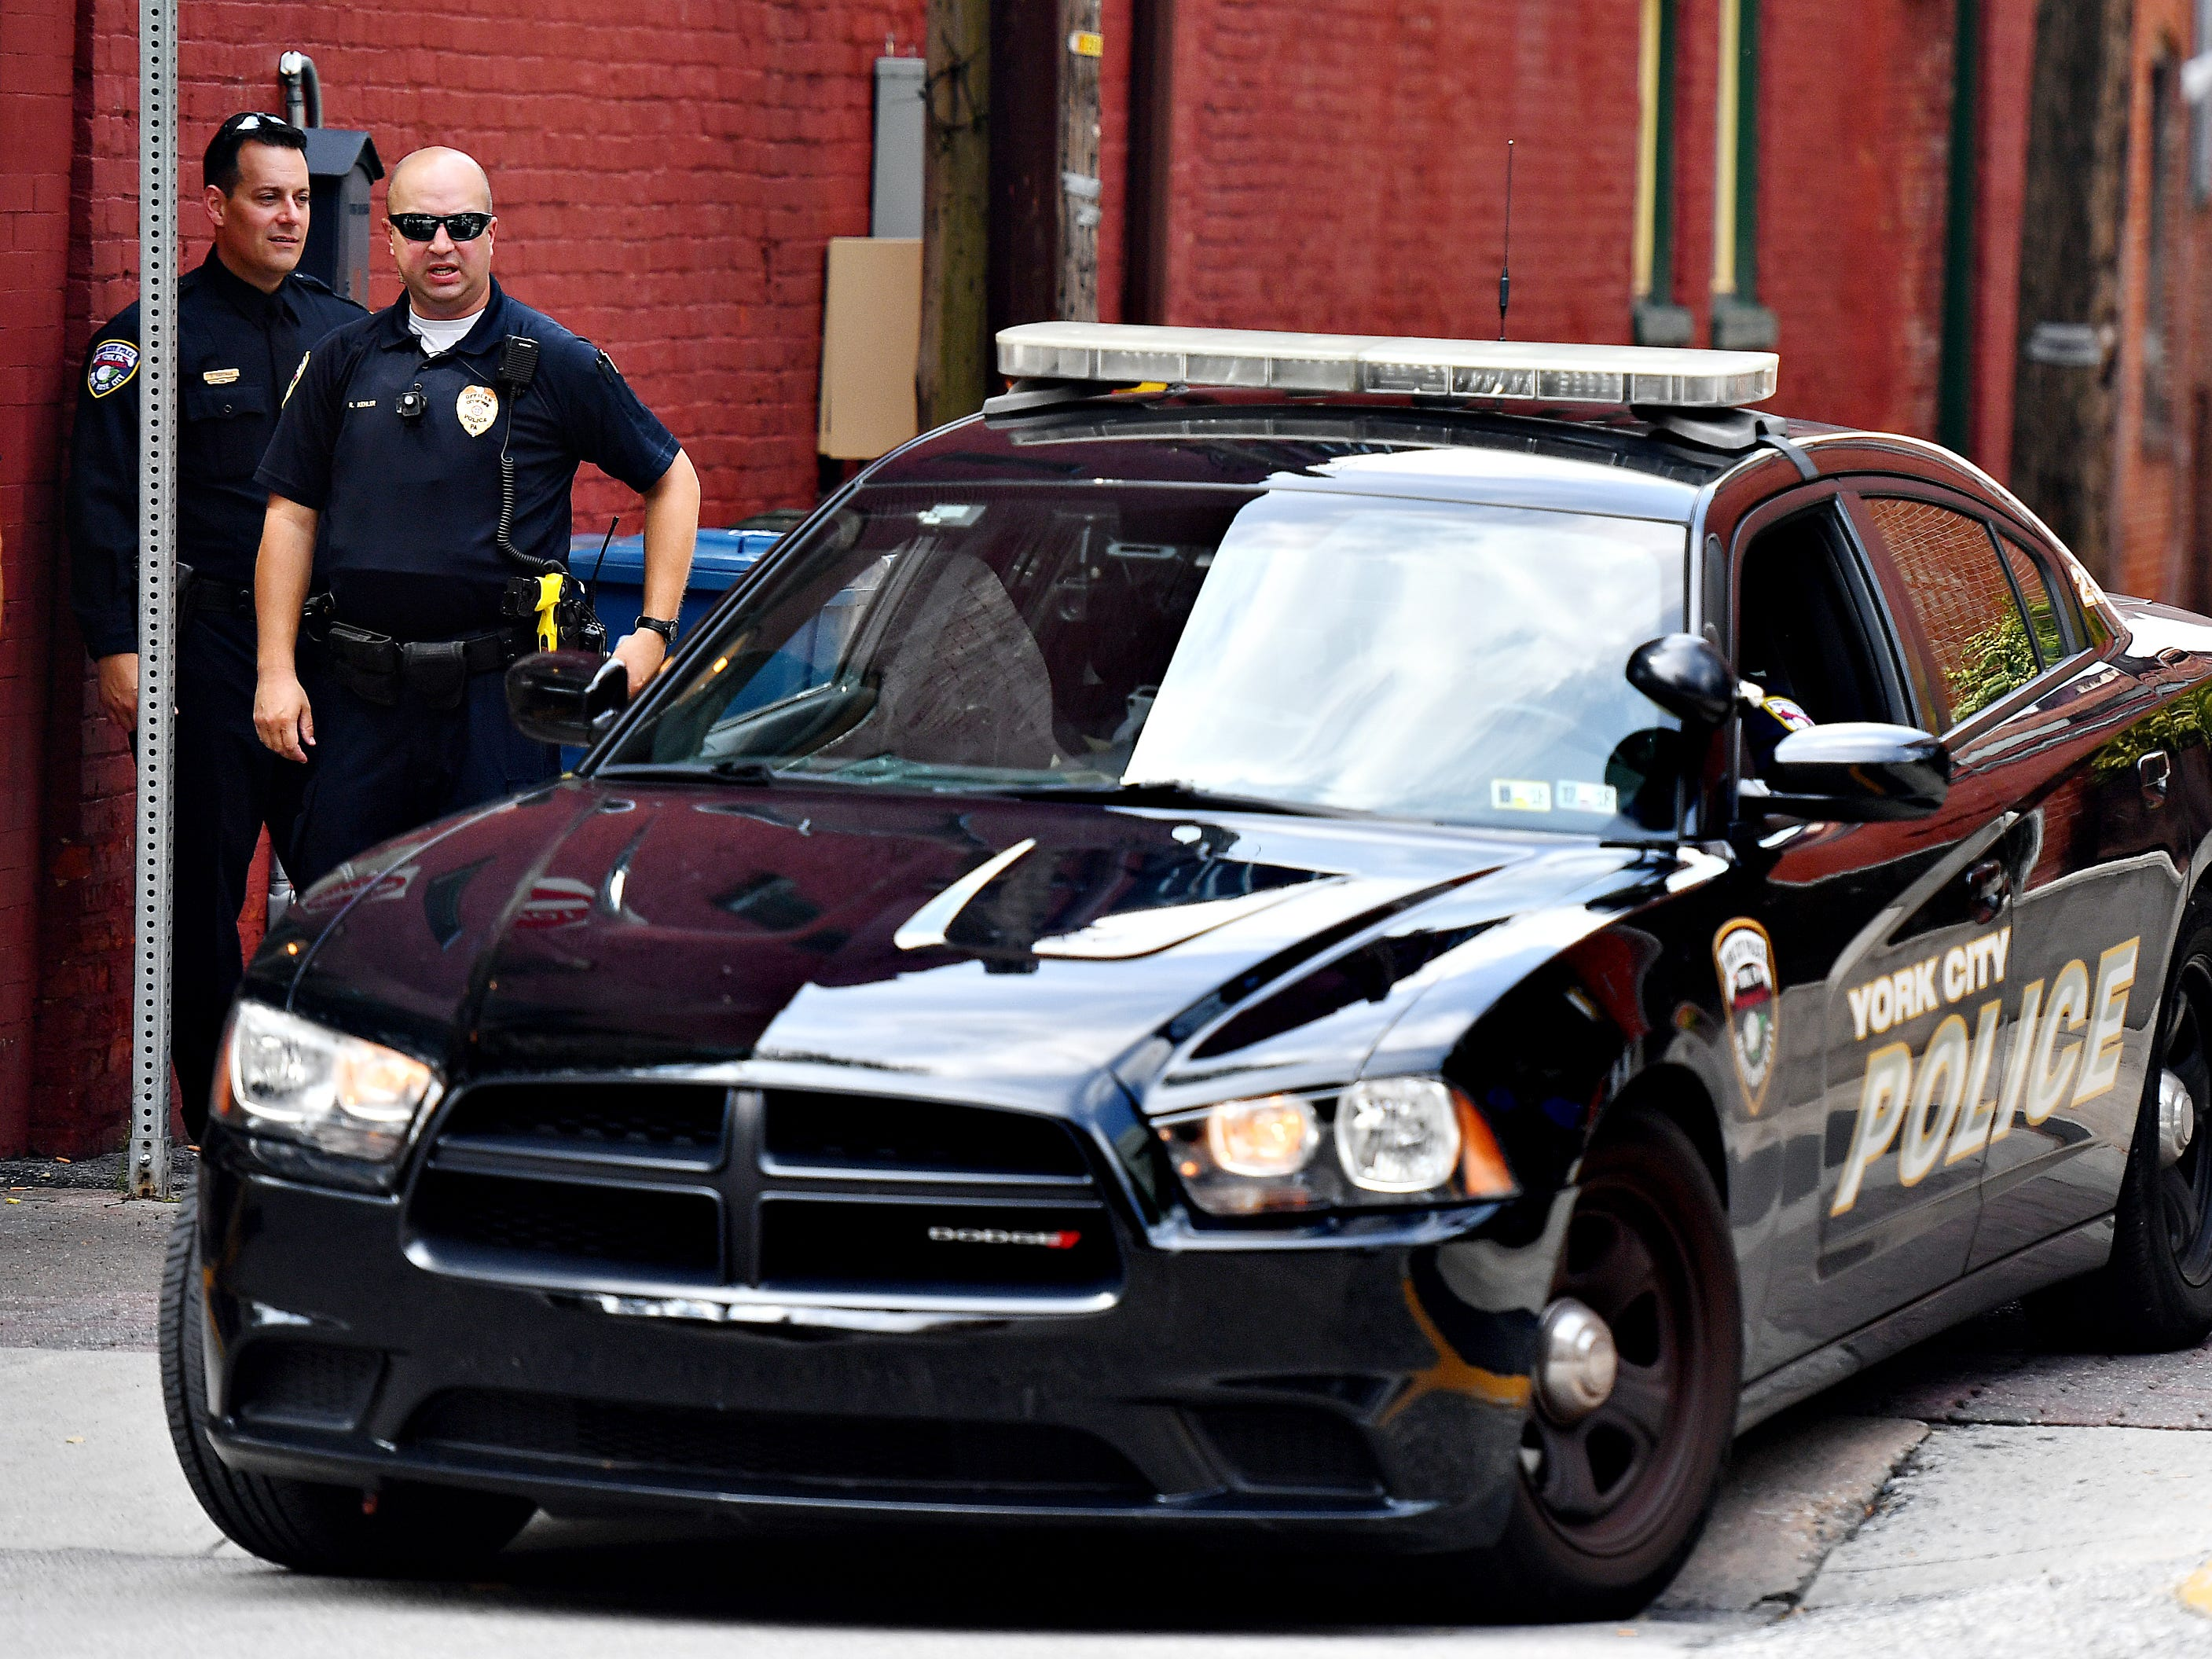 York City Police Officer's Derek Hartman, left, and Rich Kehler III, look on after dispatching an officer to pursue a driver who violated pedestrian safety laws in a crosswalk at the intersection of North George Street and Clarke Avenue in York City, Friday, Aug. 10, 2018. Dawn J. Sagert